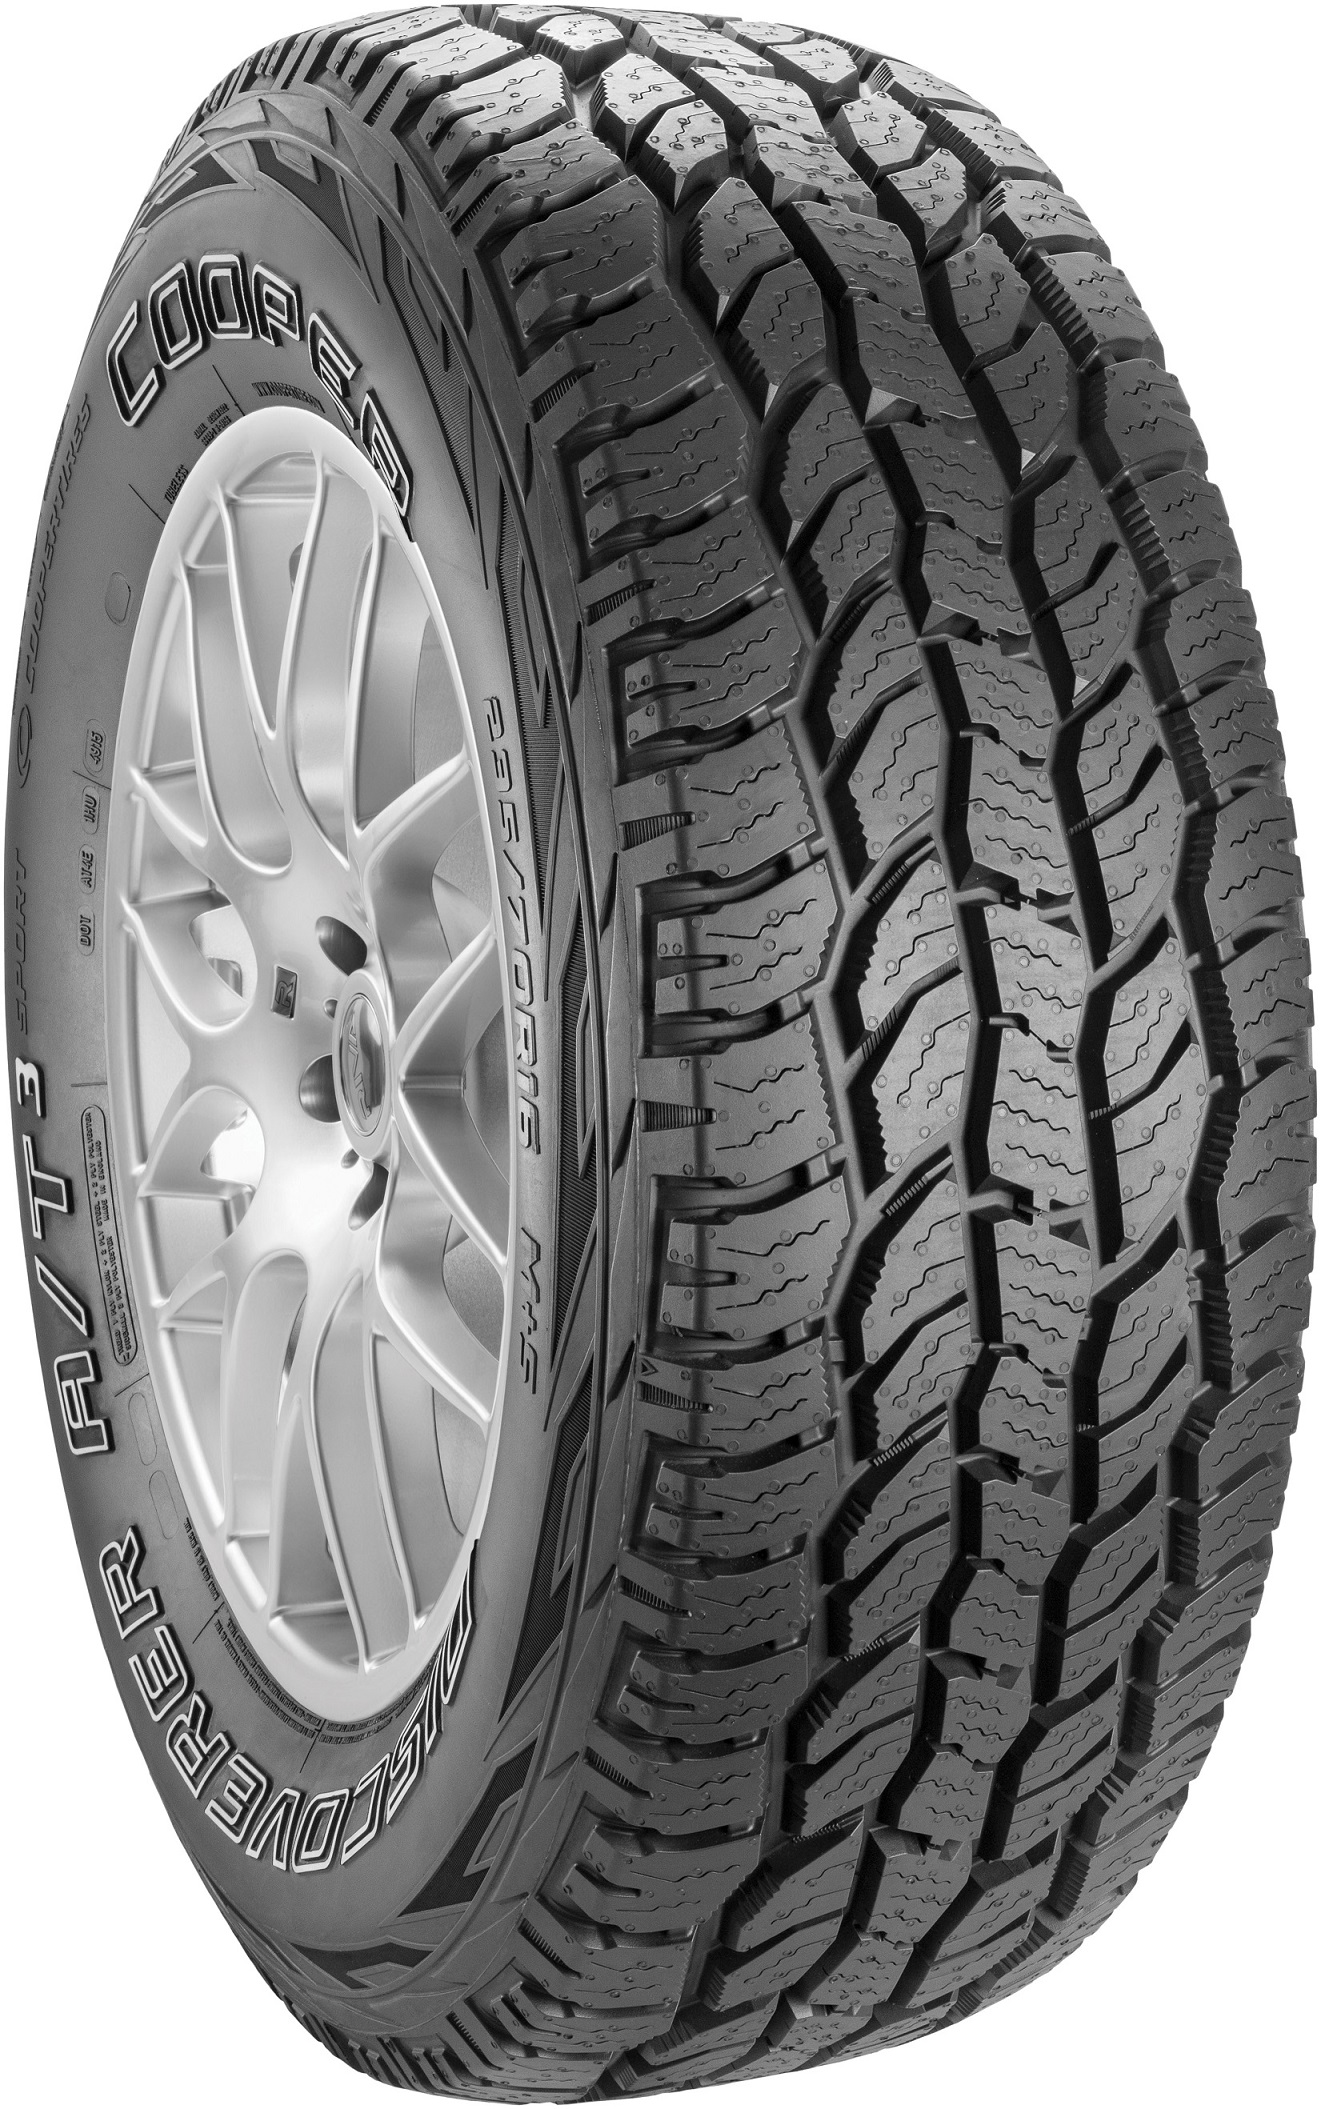 Gomme Nuove Cooper Tyres 215/80 R15 102T DISCOVERER AT3 SP2 pneumatici nuovi Estivo